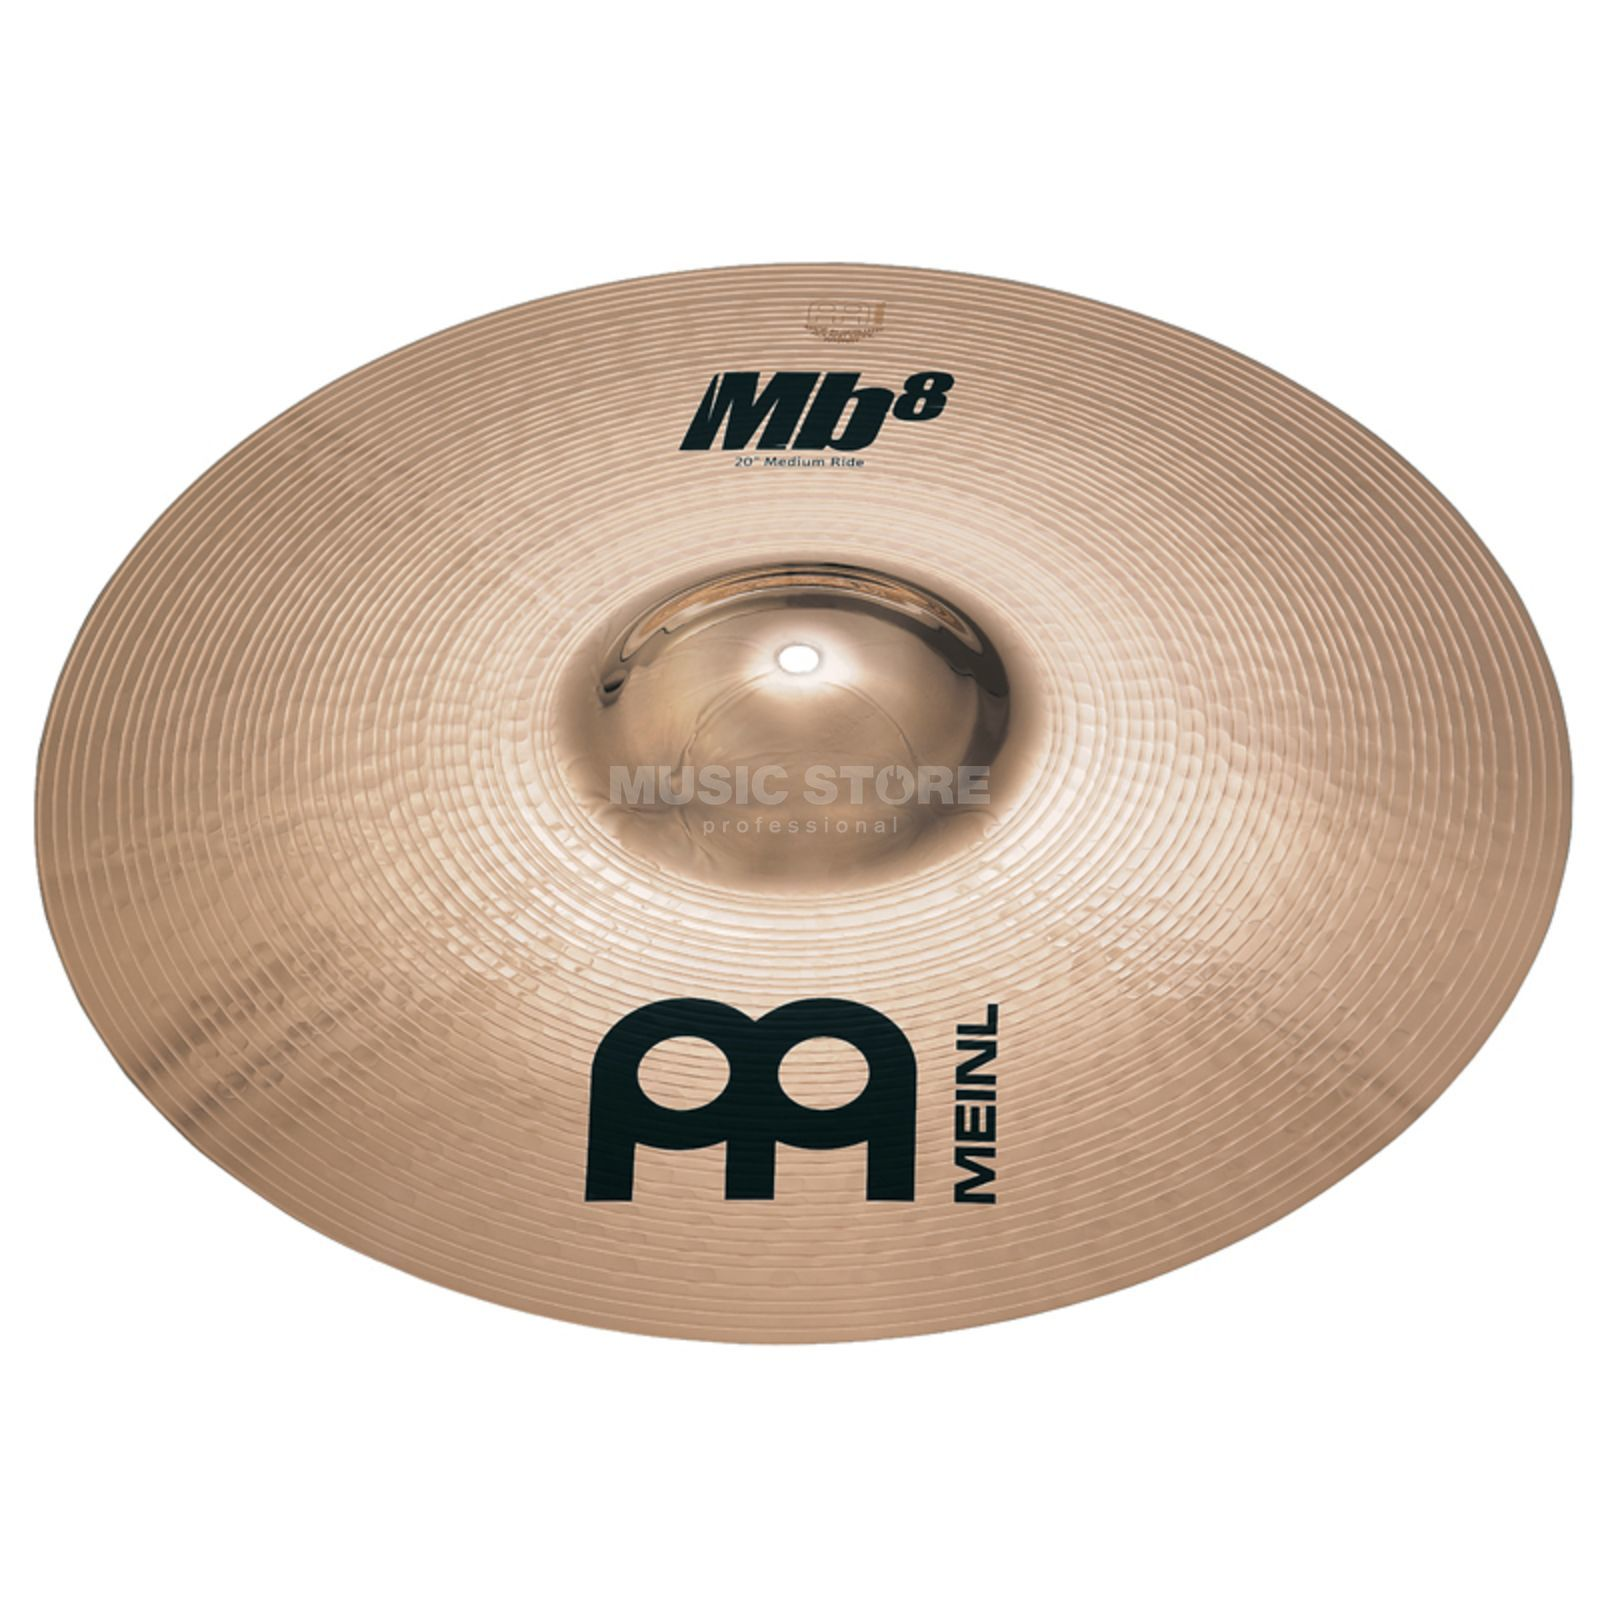 "Meinl MB8 Heavy Ride 22"", MB8-22HR-B, Brilliant Finish Изображение товара"